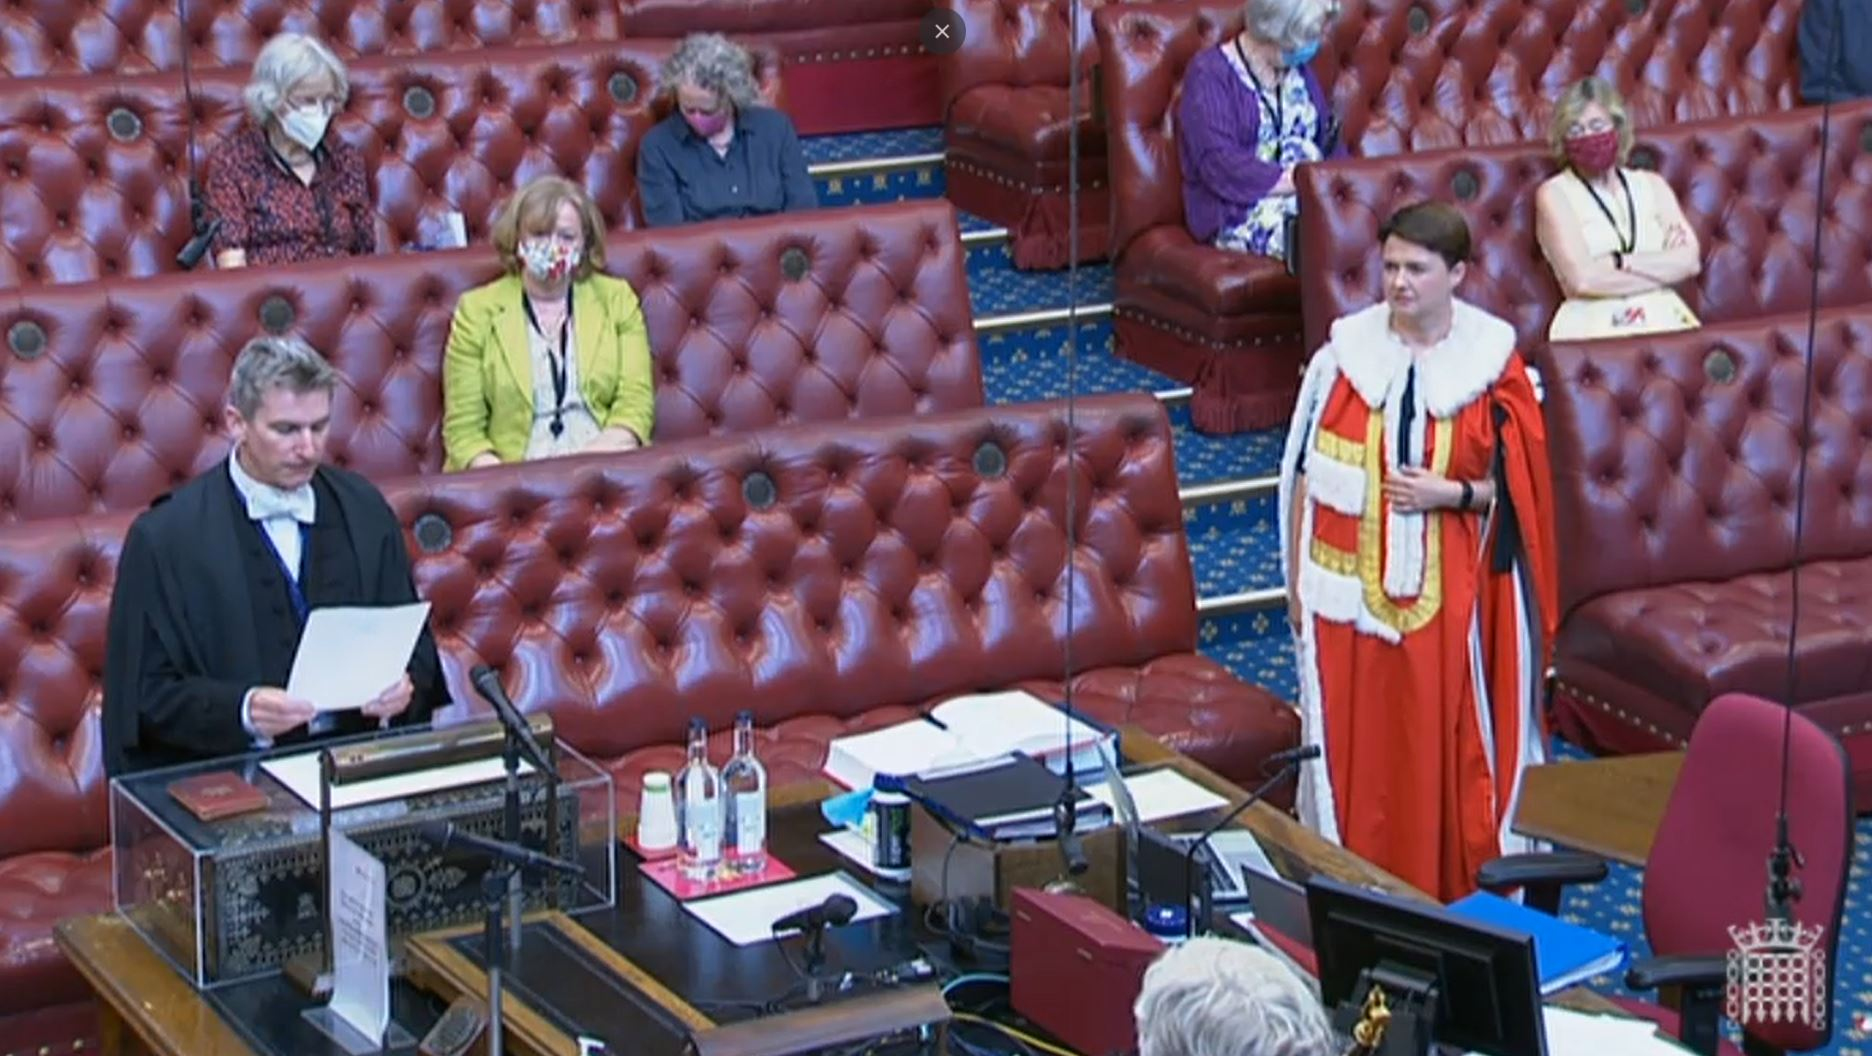 <p>Former Scottish Conservative leader Ruth Davidson has taken her seat on the red benches in the House of Lords. Baroness Davidson of Lundin Links wore the traditional scarlet robes for the short introduction ceremony in which she swore the oath of allegiance to the Queen. Picture date: Tuesday July 20, 2021.</p>